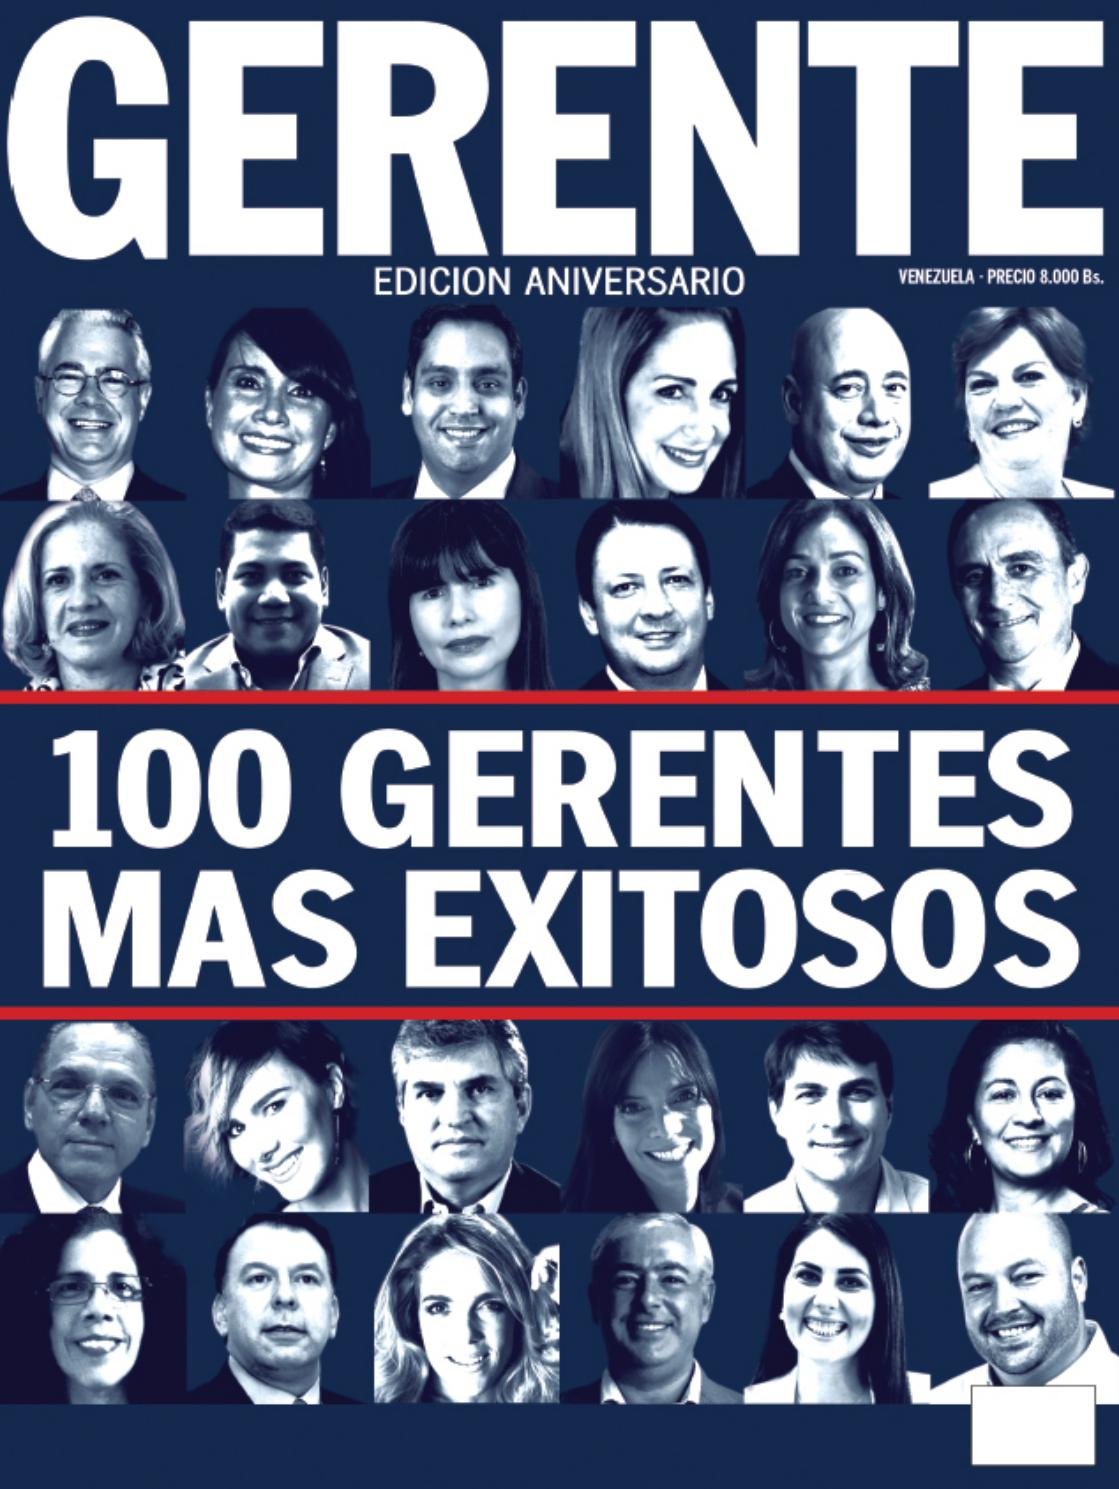 Revista Gerente Venezuela 314 by REVISTA GERENTE - issuu